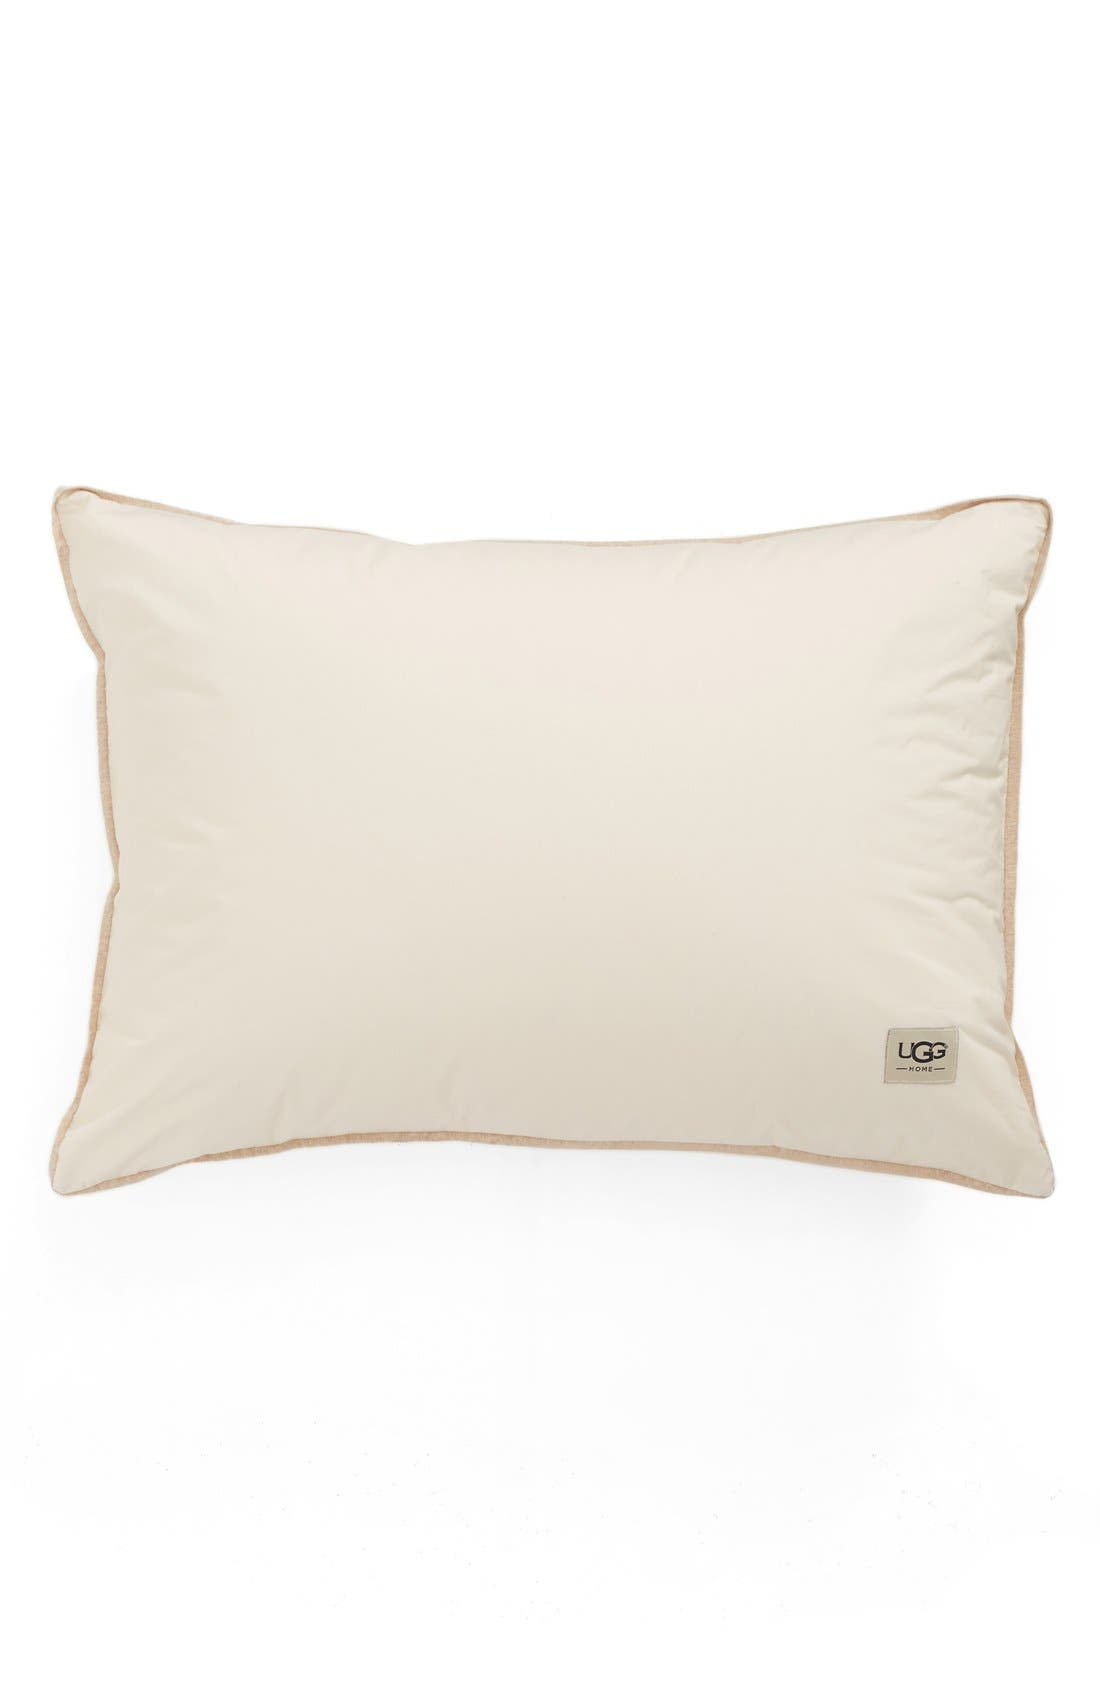 Goose Down Pillow,                         Main,                         color, All Natural